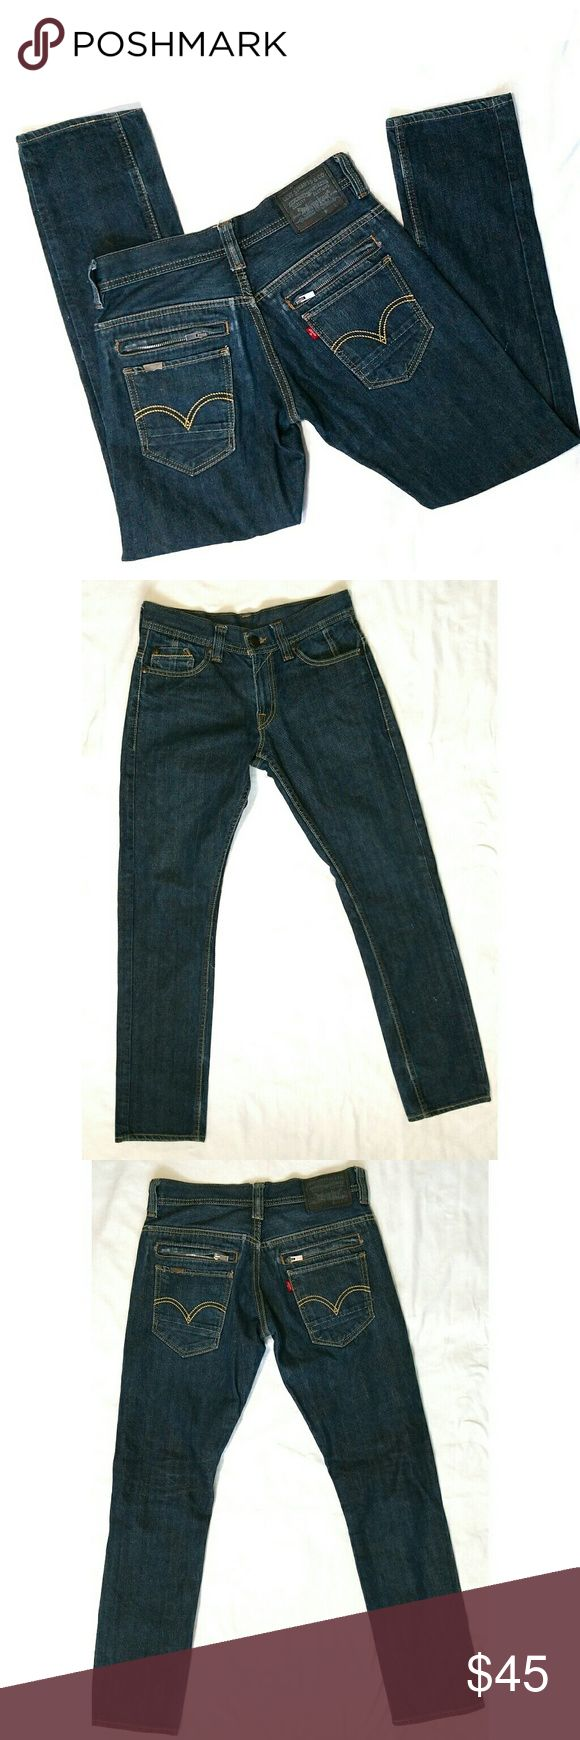 """511 Levis skinny jeans dark wash zipper pockets Mens 511 Levis skinny jeans, size 30x32, dark wash, back zipper pockets. Made in Mexico. 100% cotton. There are a few very tiny discoloration marks on the leg. See last photo for reference. Price reflects the flaw.  Waist: 15"""" Rise: 12"""" Inseam: 32"""" Length: 41"""" Levi's Jeans Skinny"""